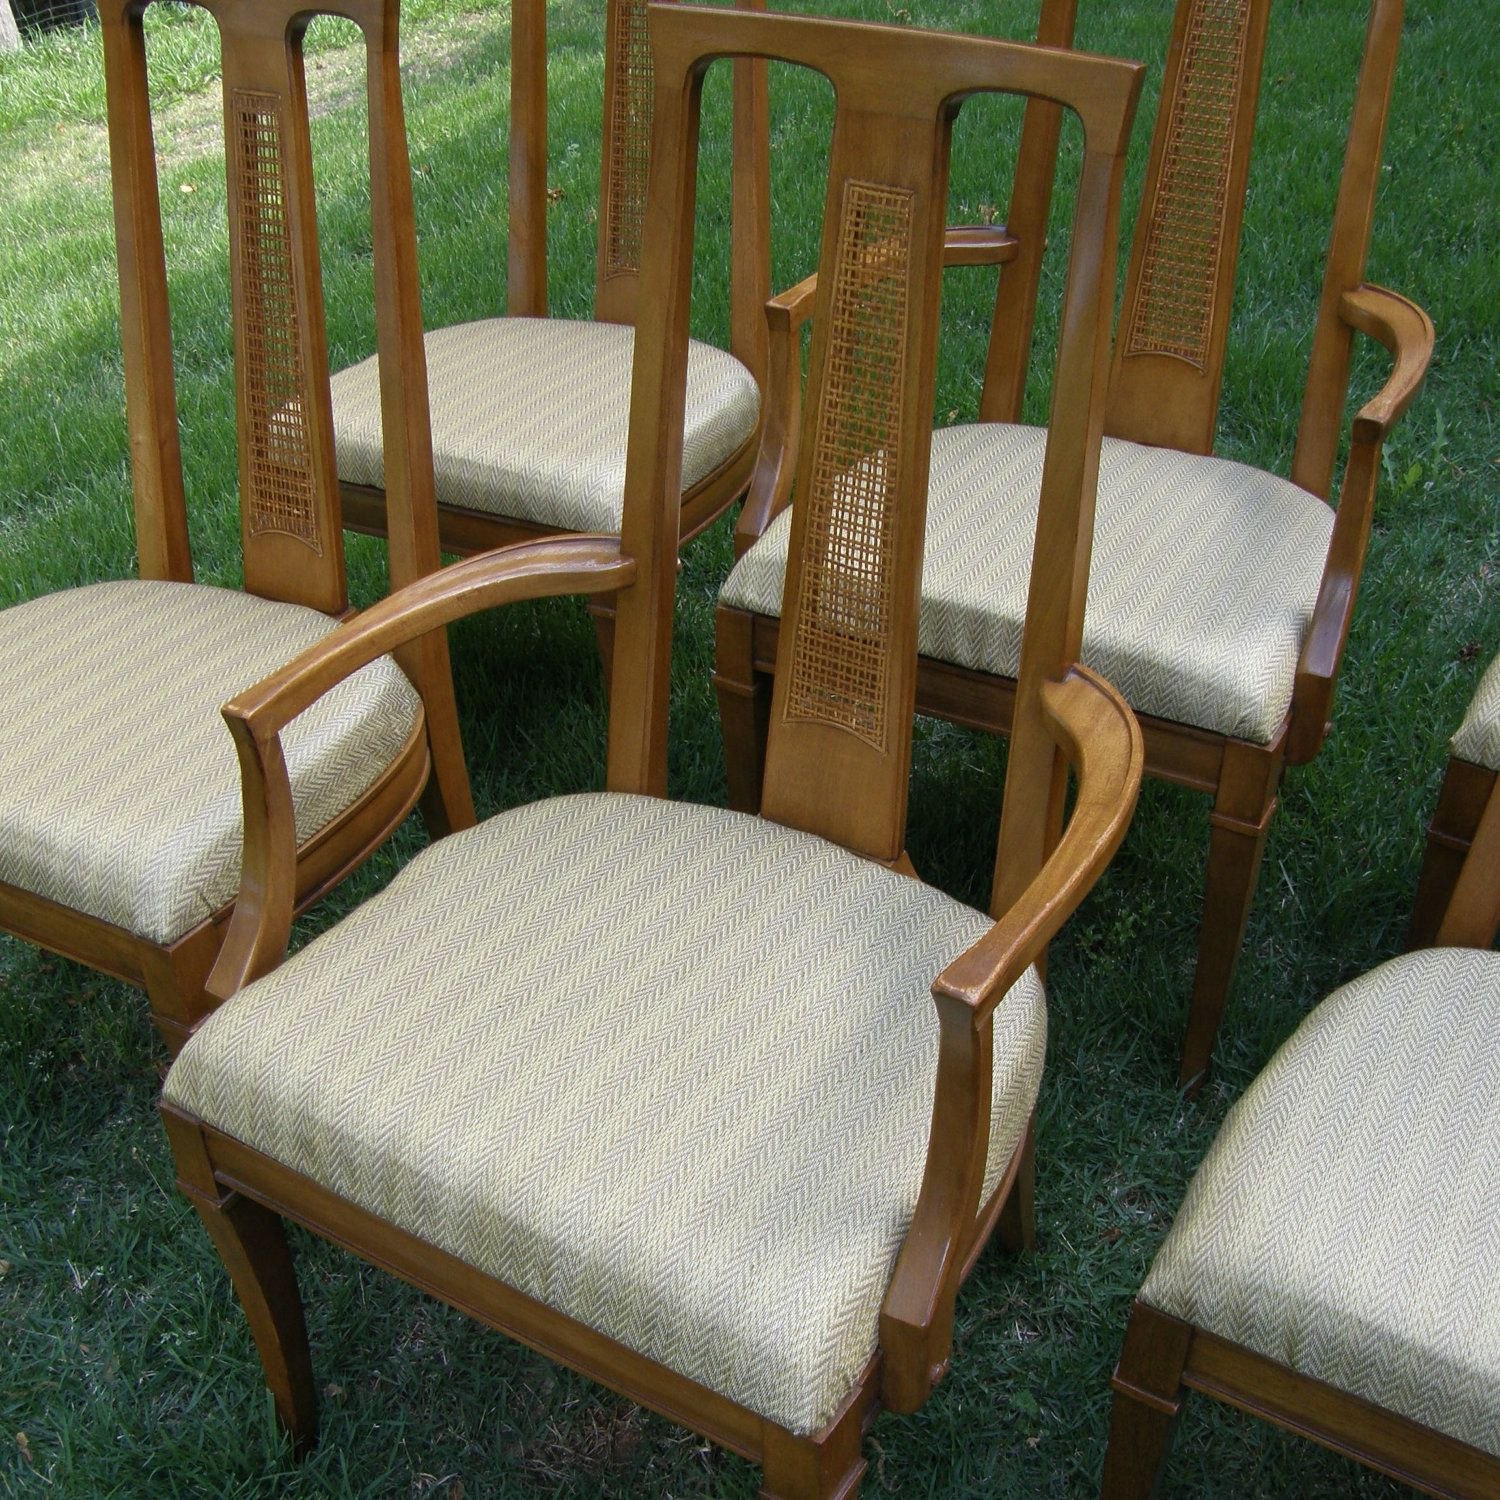 Asian Modern Mahogany Drexel Triune Dining Chairs Midcentury Chinoiserie Set Of 6 500 00 Via Etsy Asian Furniture Furniture Dining Chairs